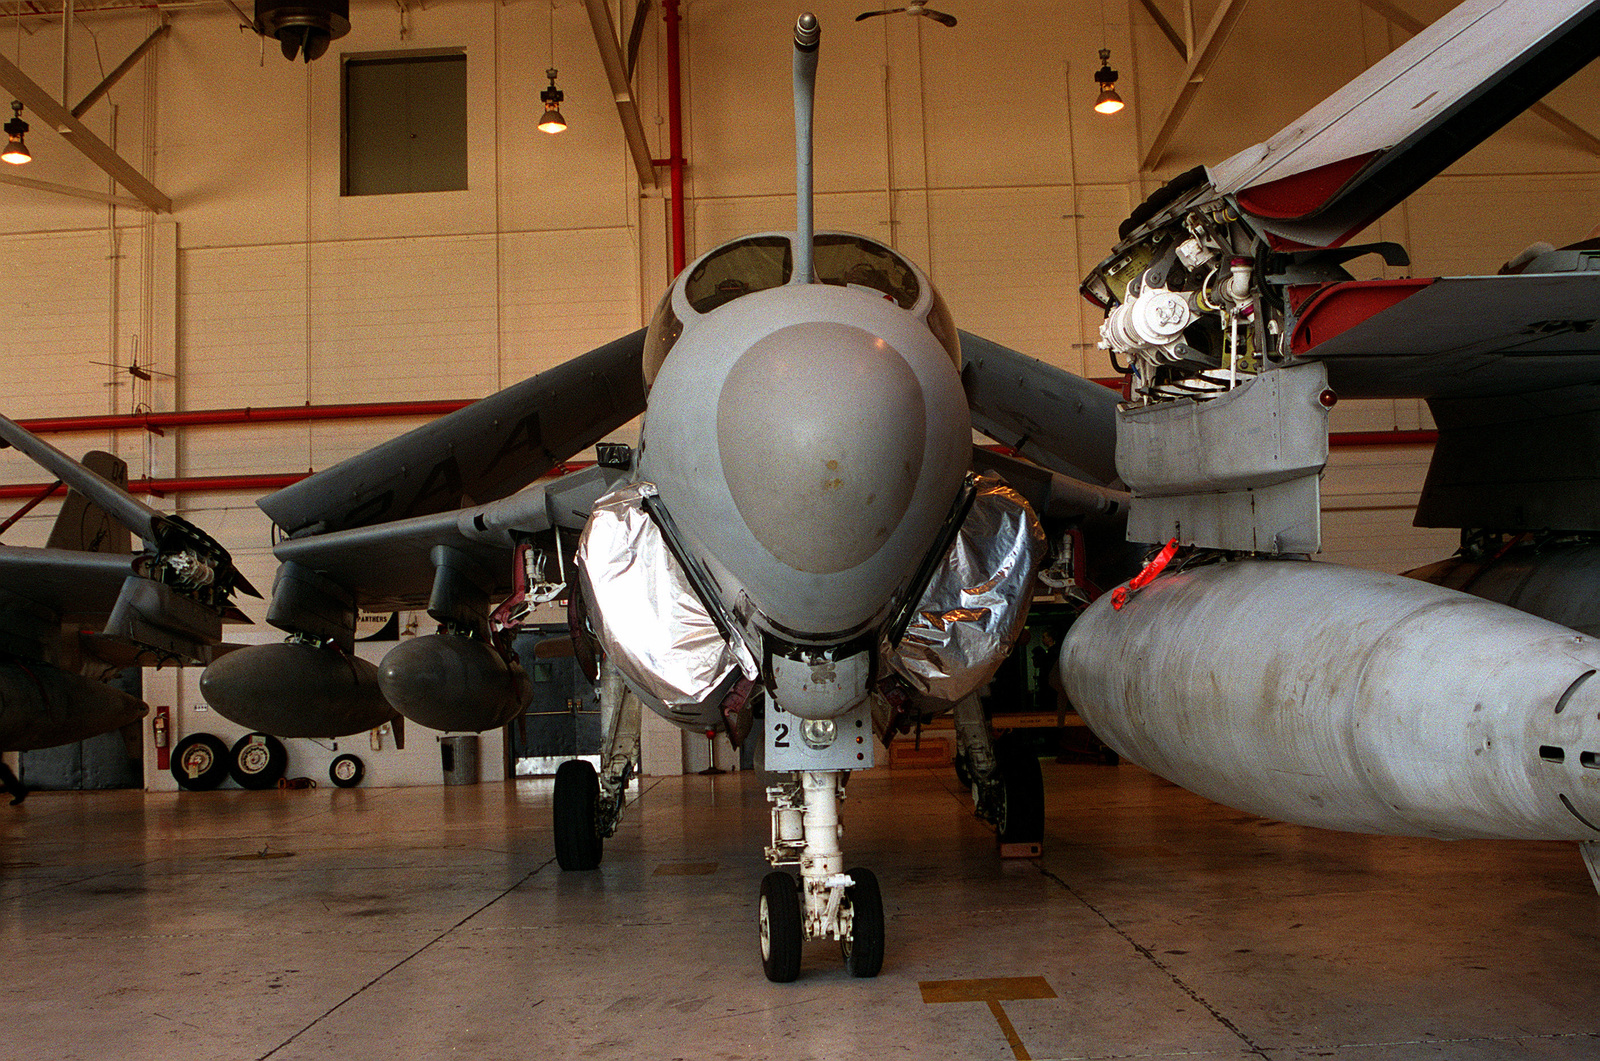 Three A-6E Intruder aircraft of Attack Squadron 35 (VA-35) are shown secured inside hangar III. Their intakes are sealed while the planes are in short term storage (30-day preservation) due to a lack of operating funds